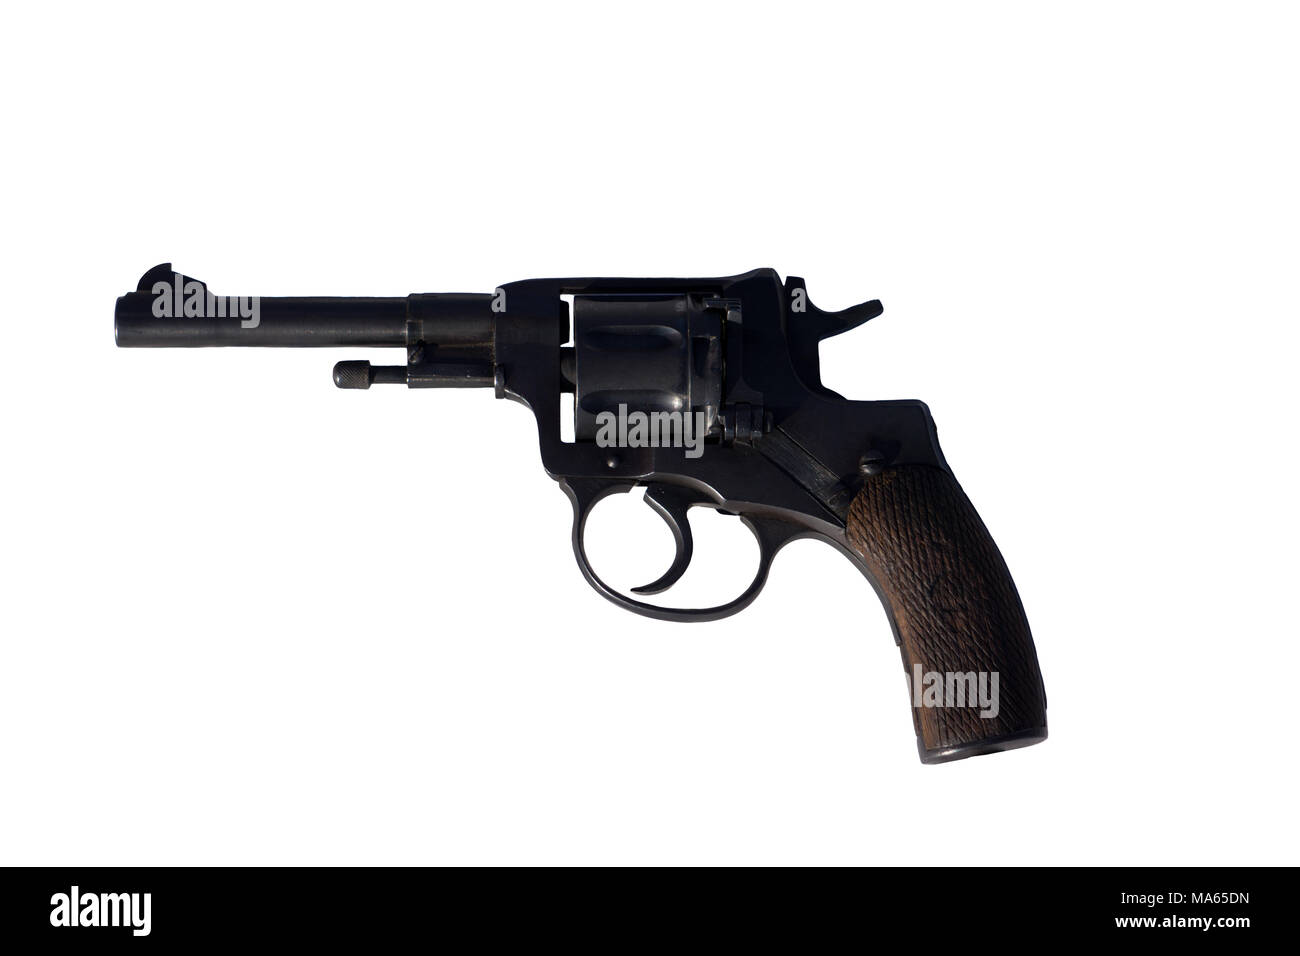 close the revolver leaning against a white background. Isolate clipping path available . - Stock Image